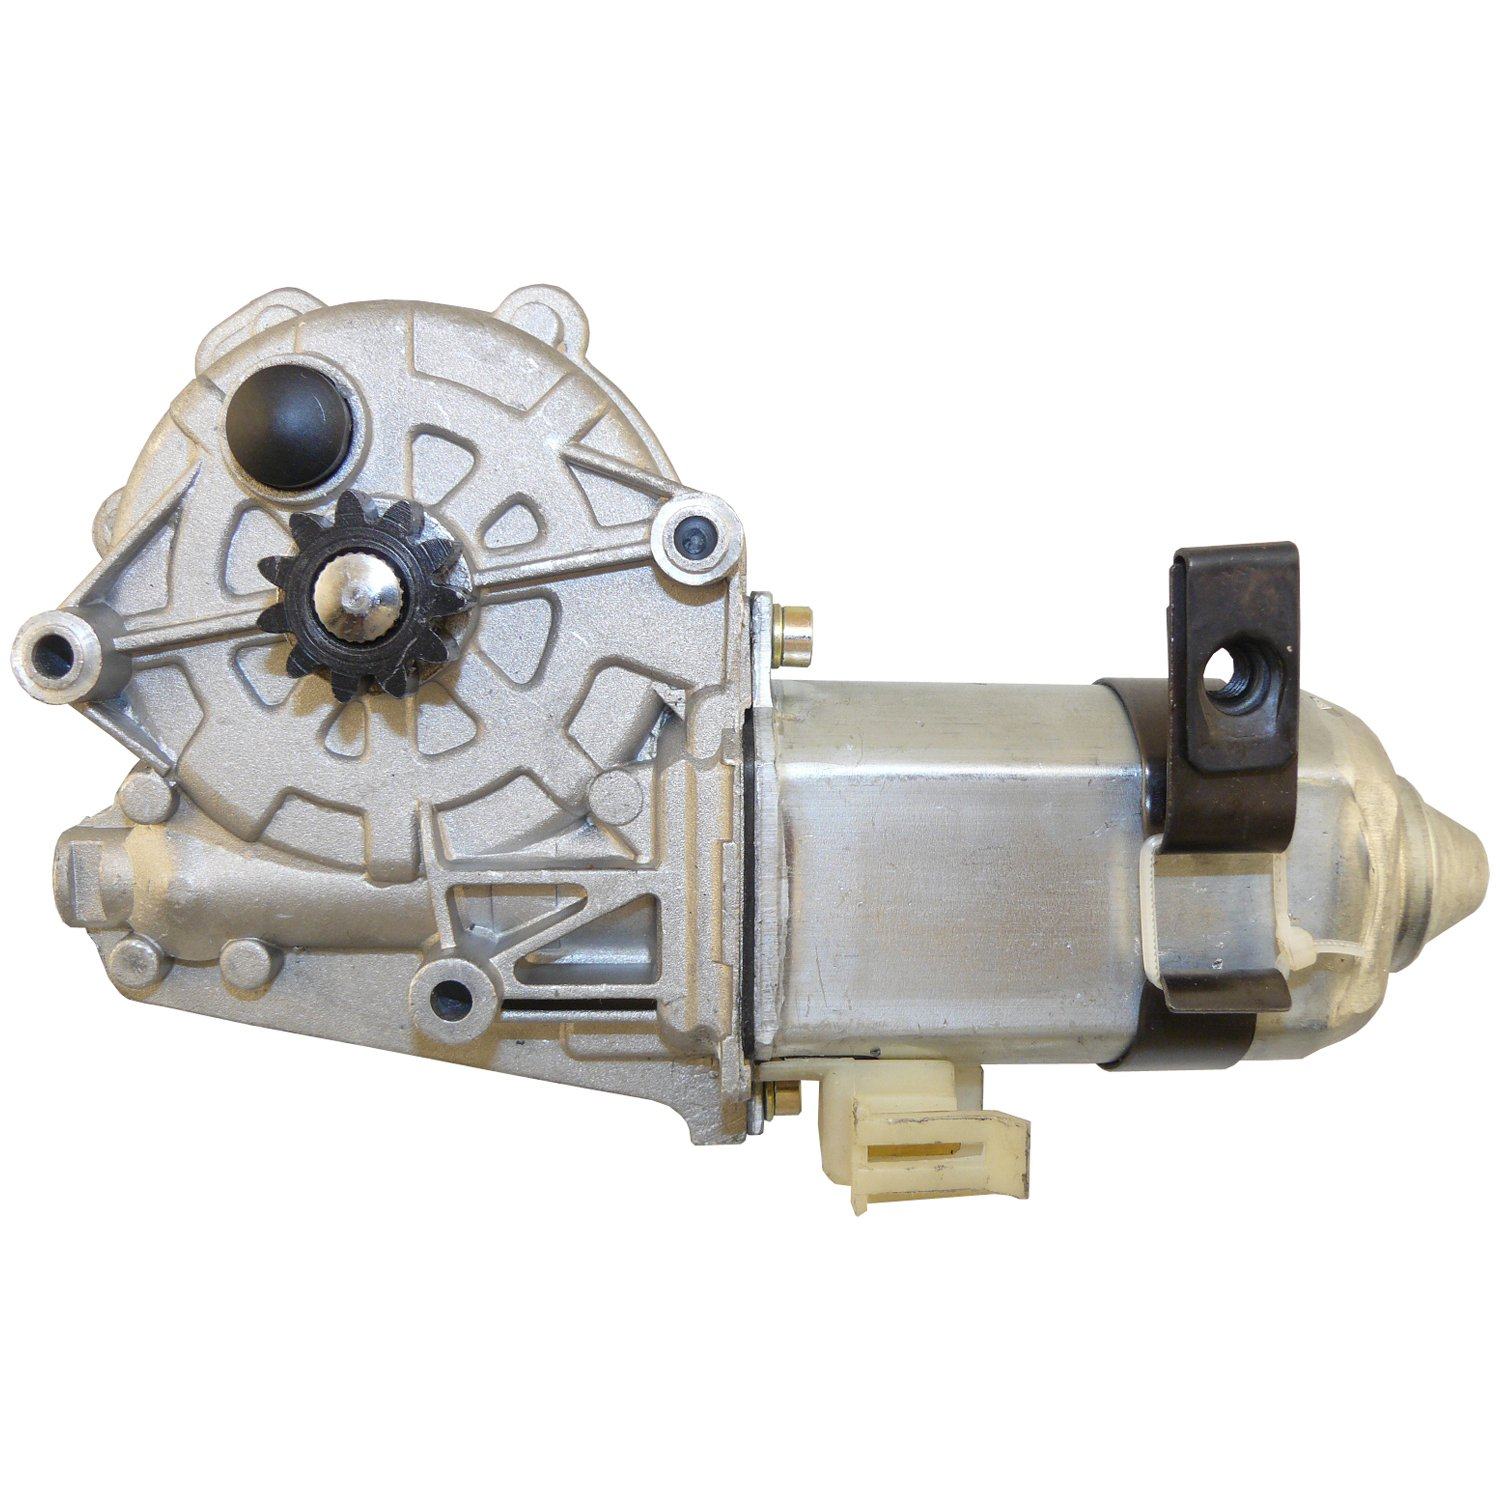 ACDelco 11M66 Professional Front Passenger Side Power Window Motor